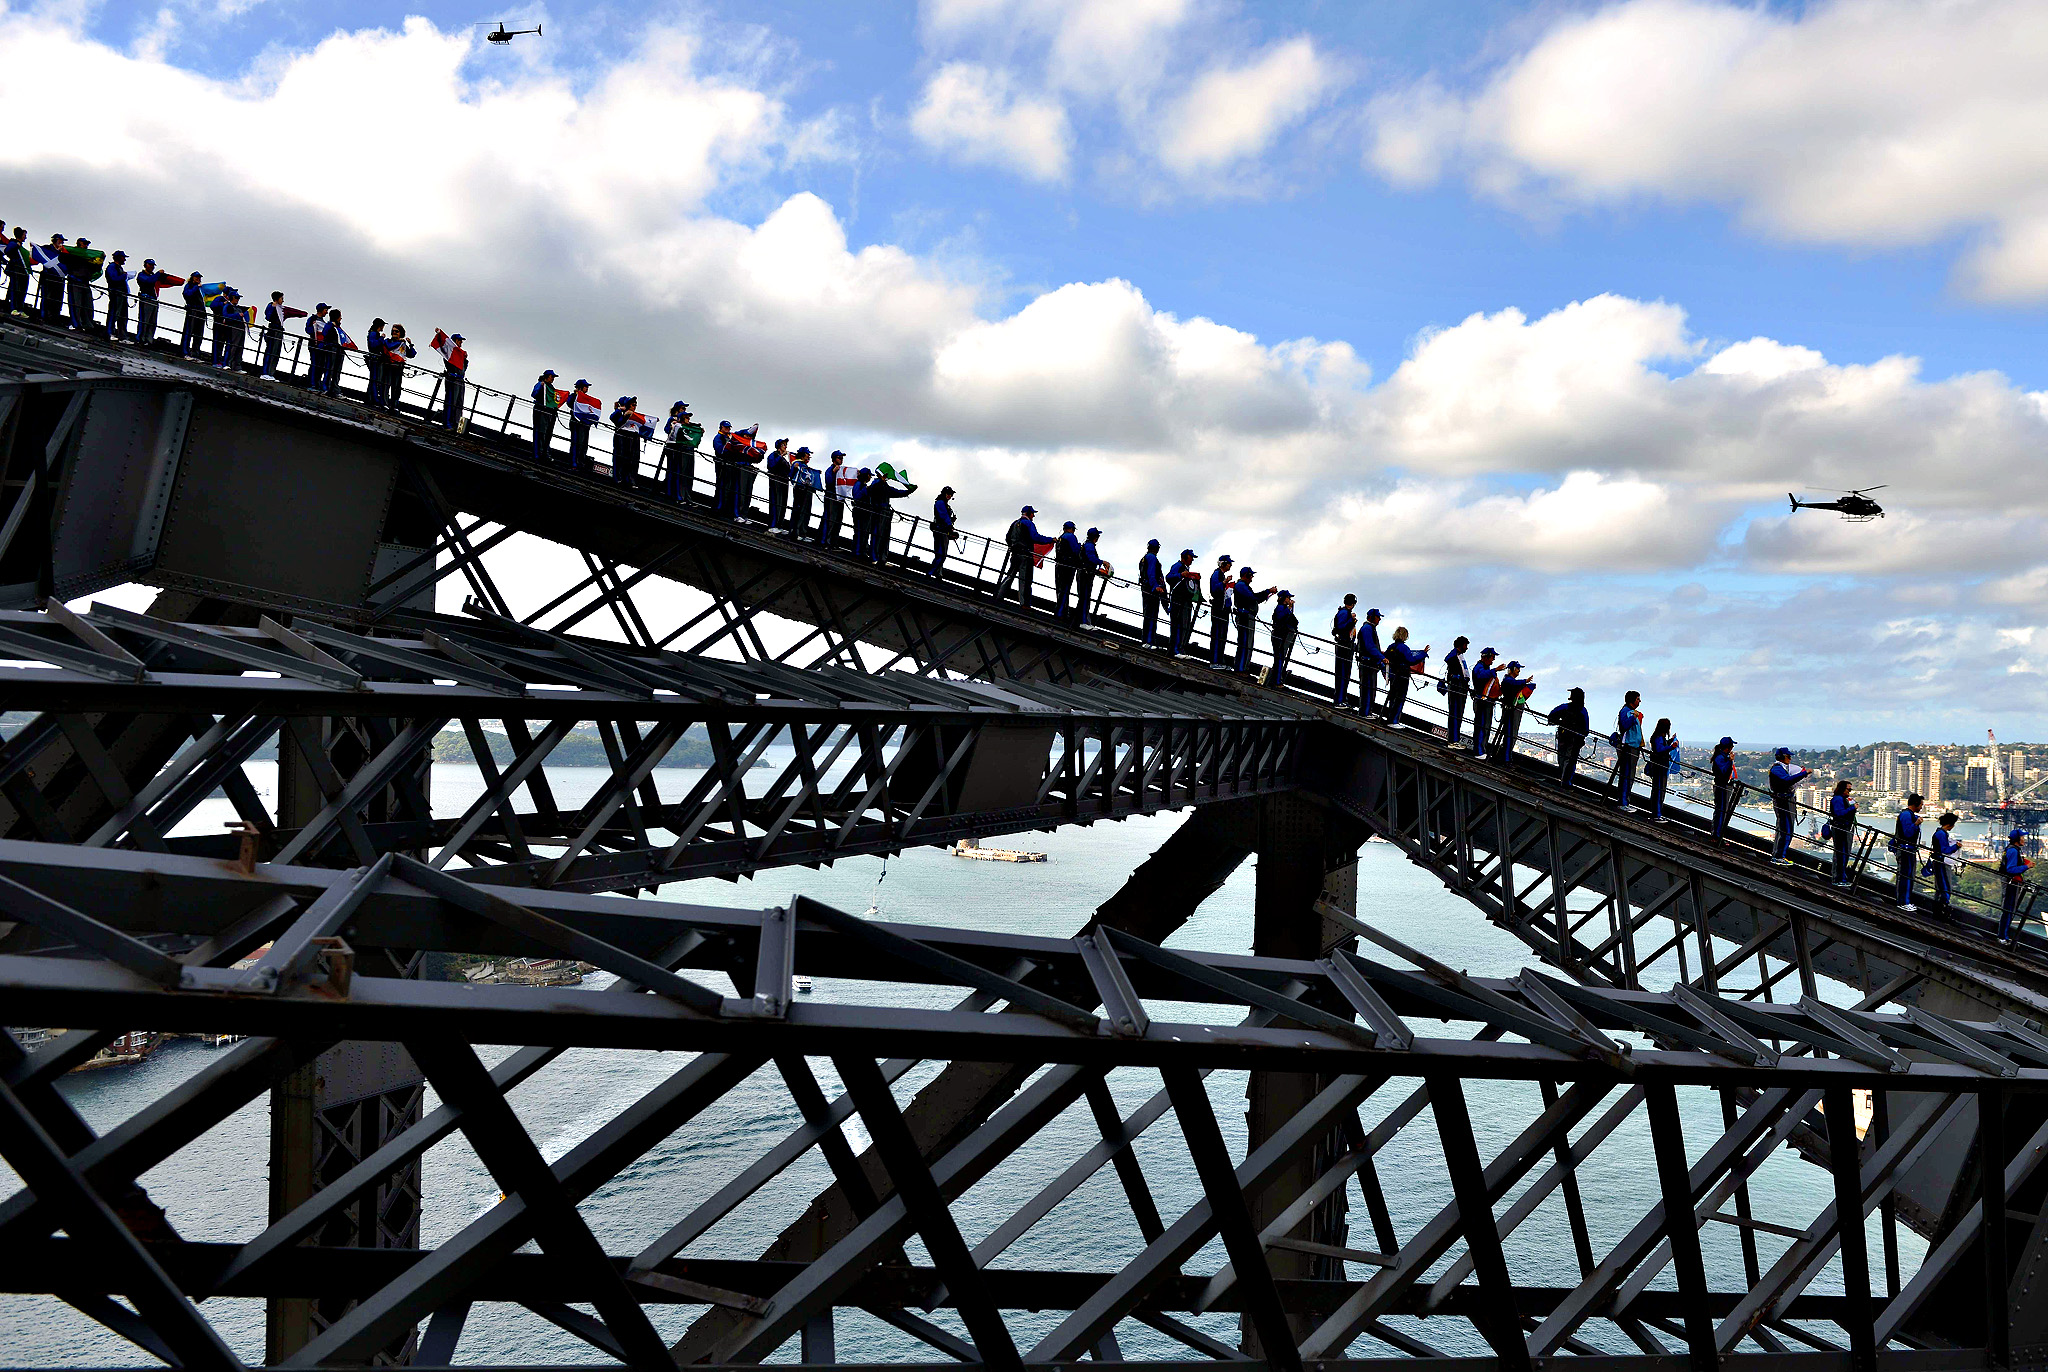 Rotary members and friends climb Sydney Harbour Bridge in an attempt to break the World Record for the most people on the bridge at one time and also the most flags on the bridge at one time in Sydney on Friday. Rotary broke the Guinness World Record for the number of people on the bridge with 340 beating the previous record of 316 organised by Oprah Winfrey in 2008. Also the record was broken for the number of different international flags flown with 219 flown beating the previous record of 143 to raise funds for Rotary's End Polio Now Campaign.